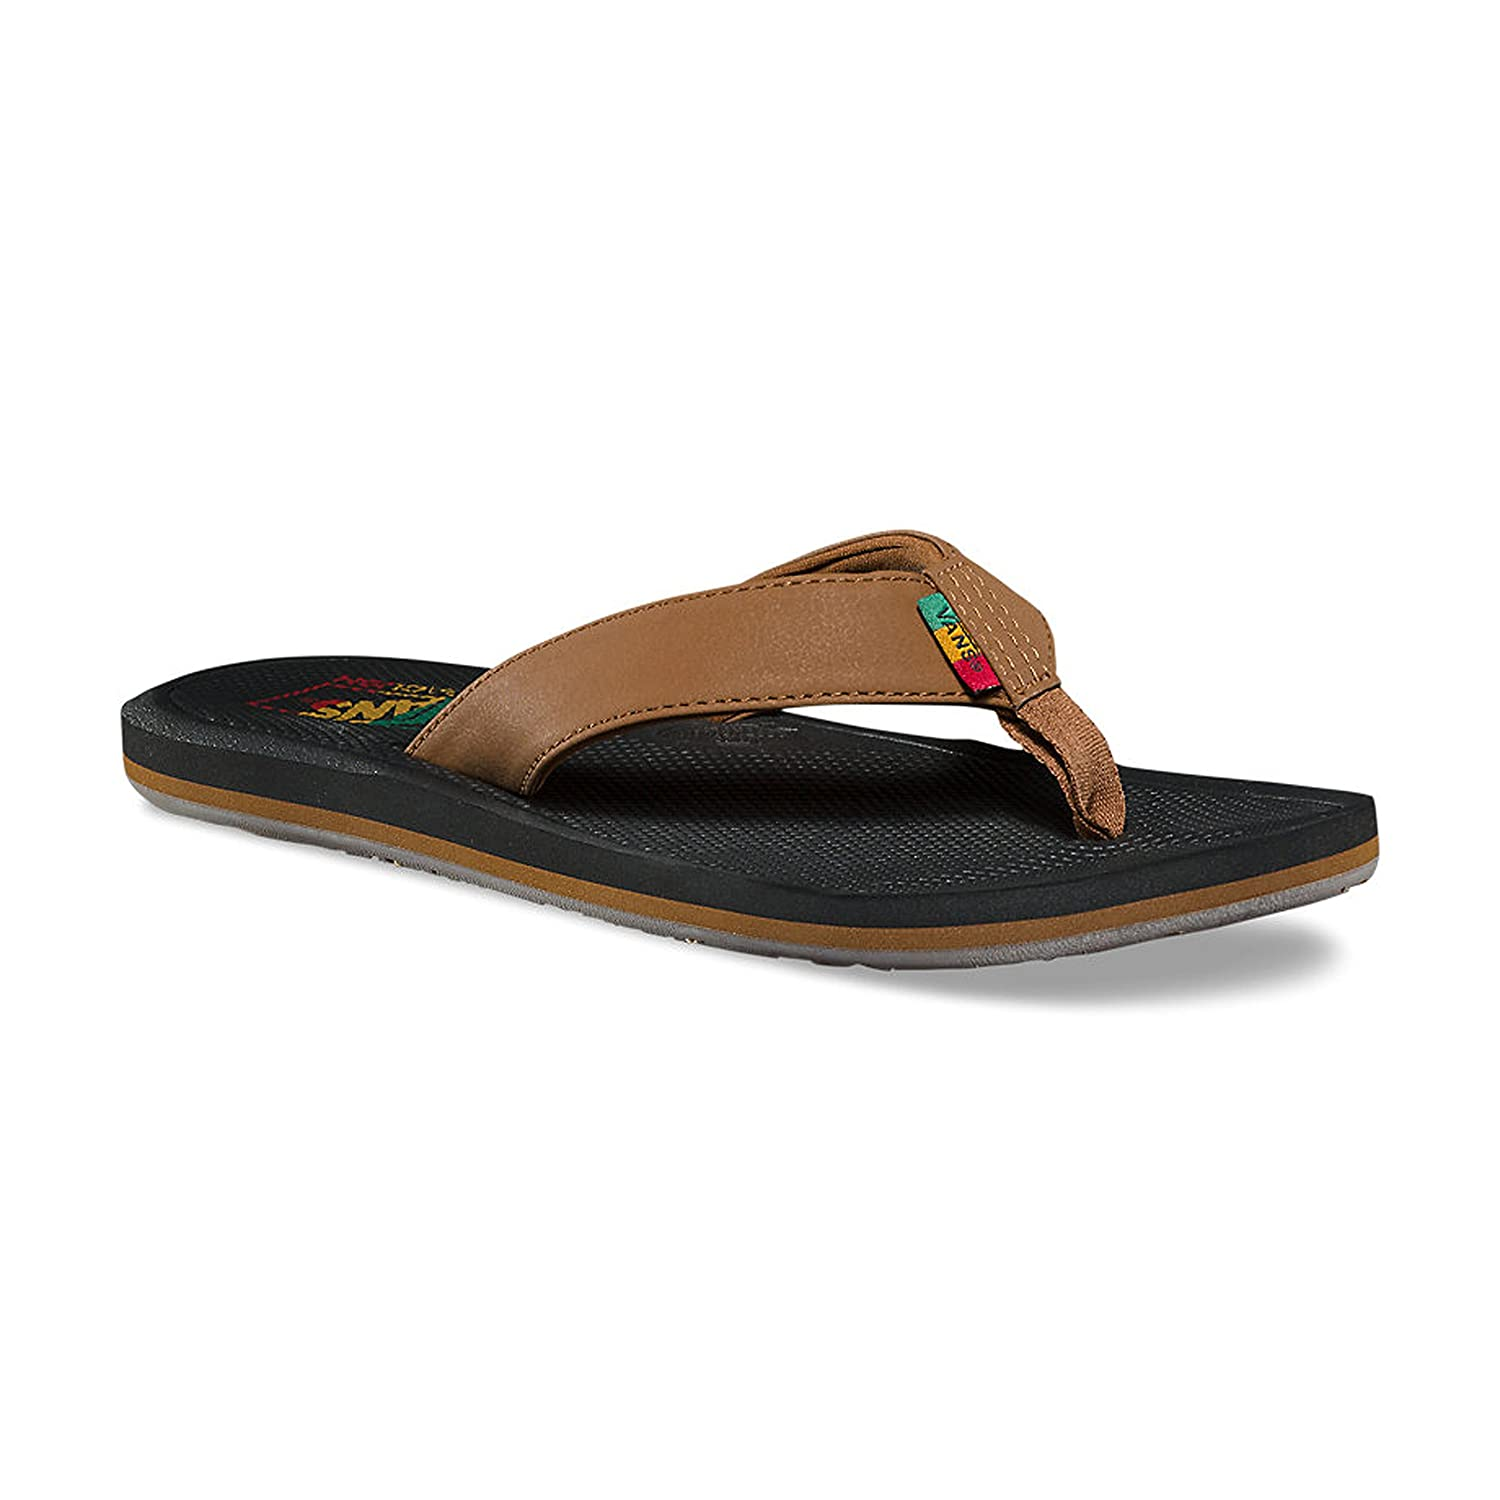 7428b83969a2 Vans Men s Nexpa Synthetic Dachshund Black Rasta Vn0a347qq3z Flip-Flops  Dachshund Black Rasta 13 D(M  Buy Online at Low Prices in India - Amazon.in